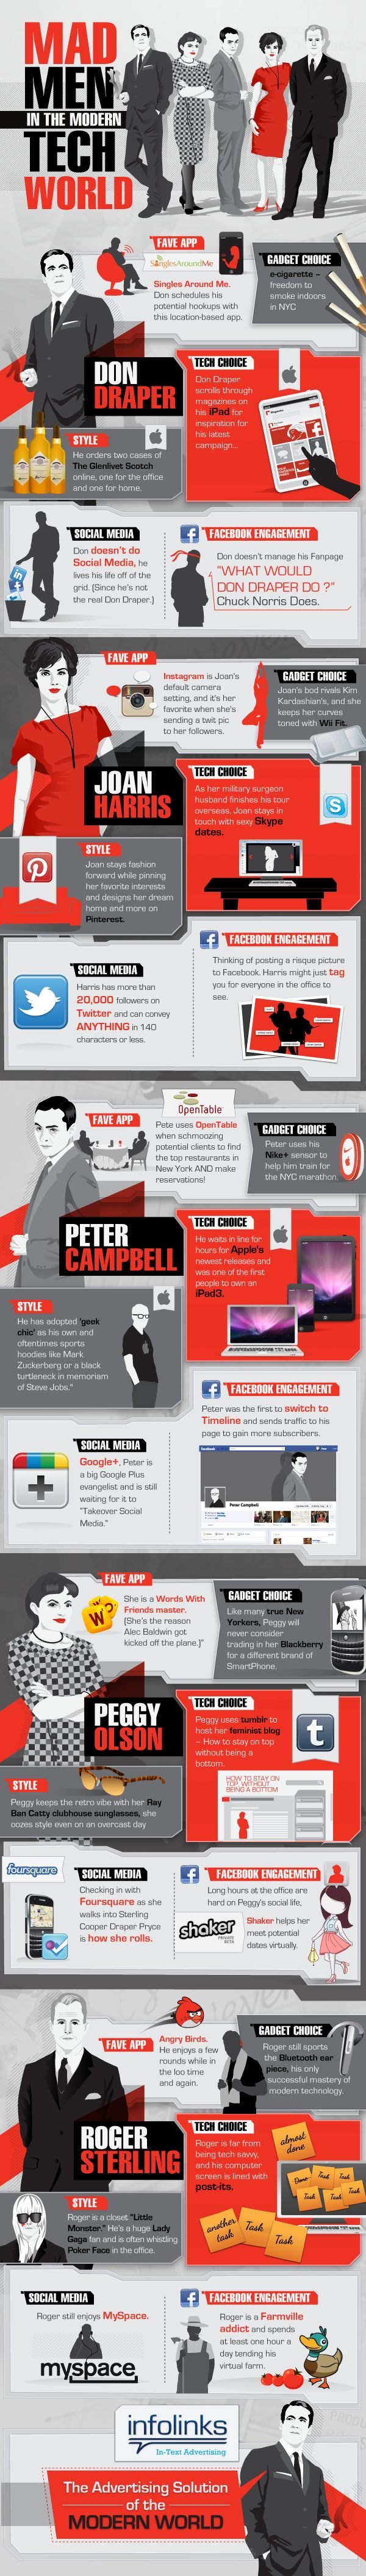 mad men in the modern tech world infographic